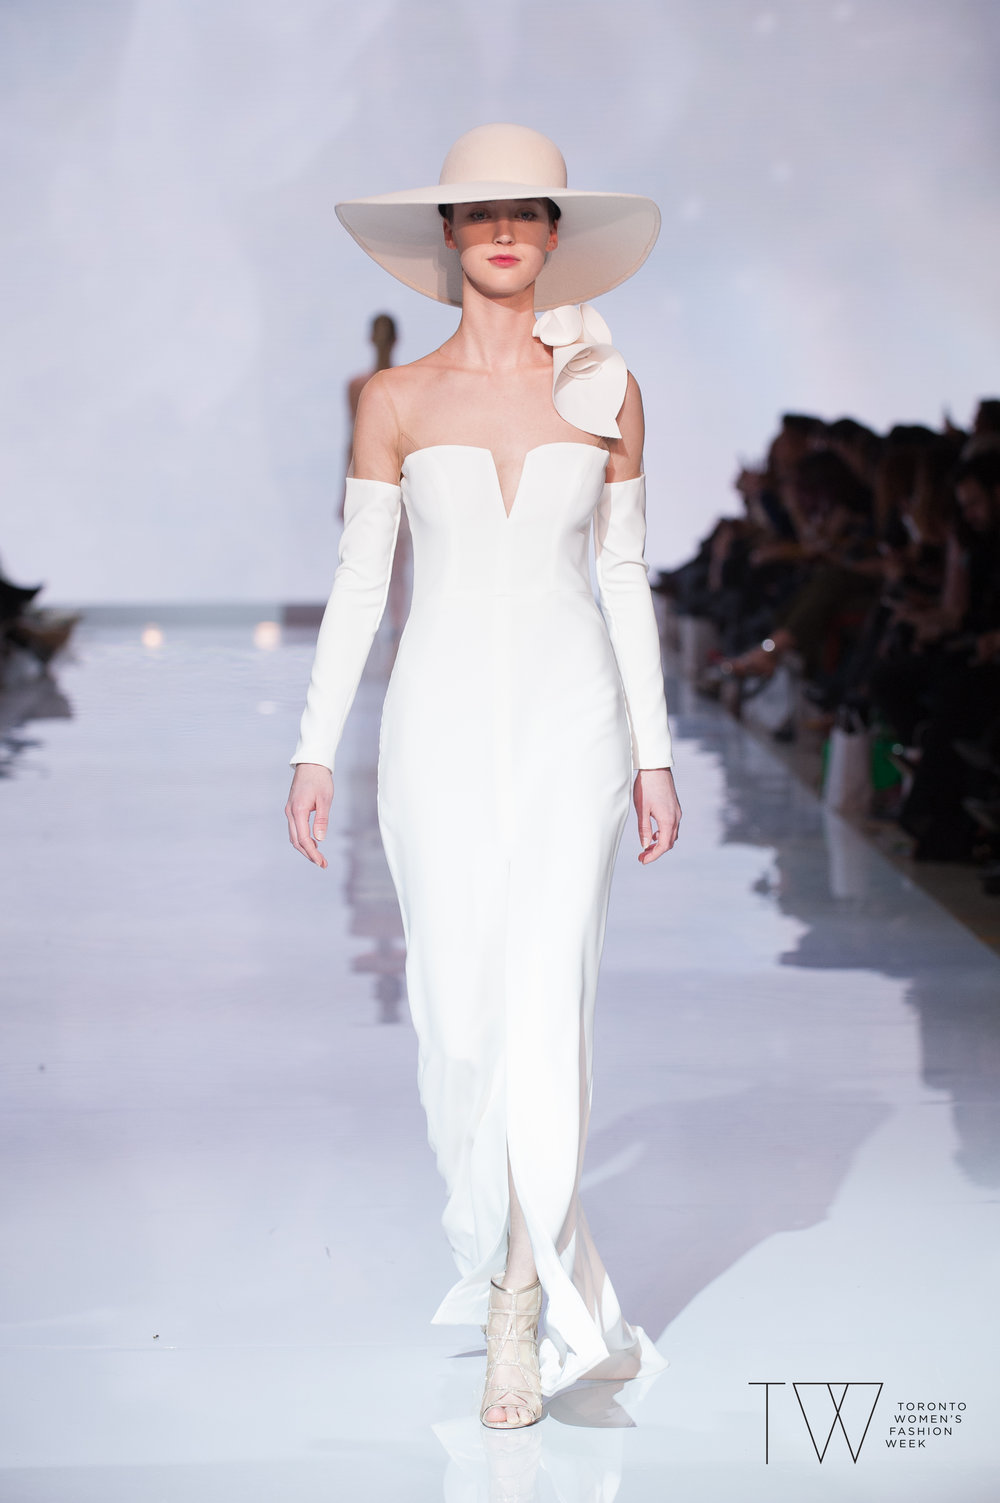 Di Carlo Coutureimage courtesy of Toronto Women's Fashion Week